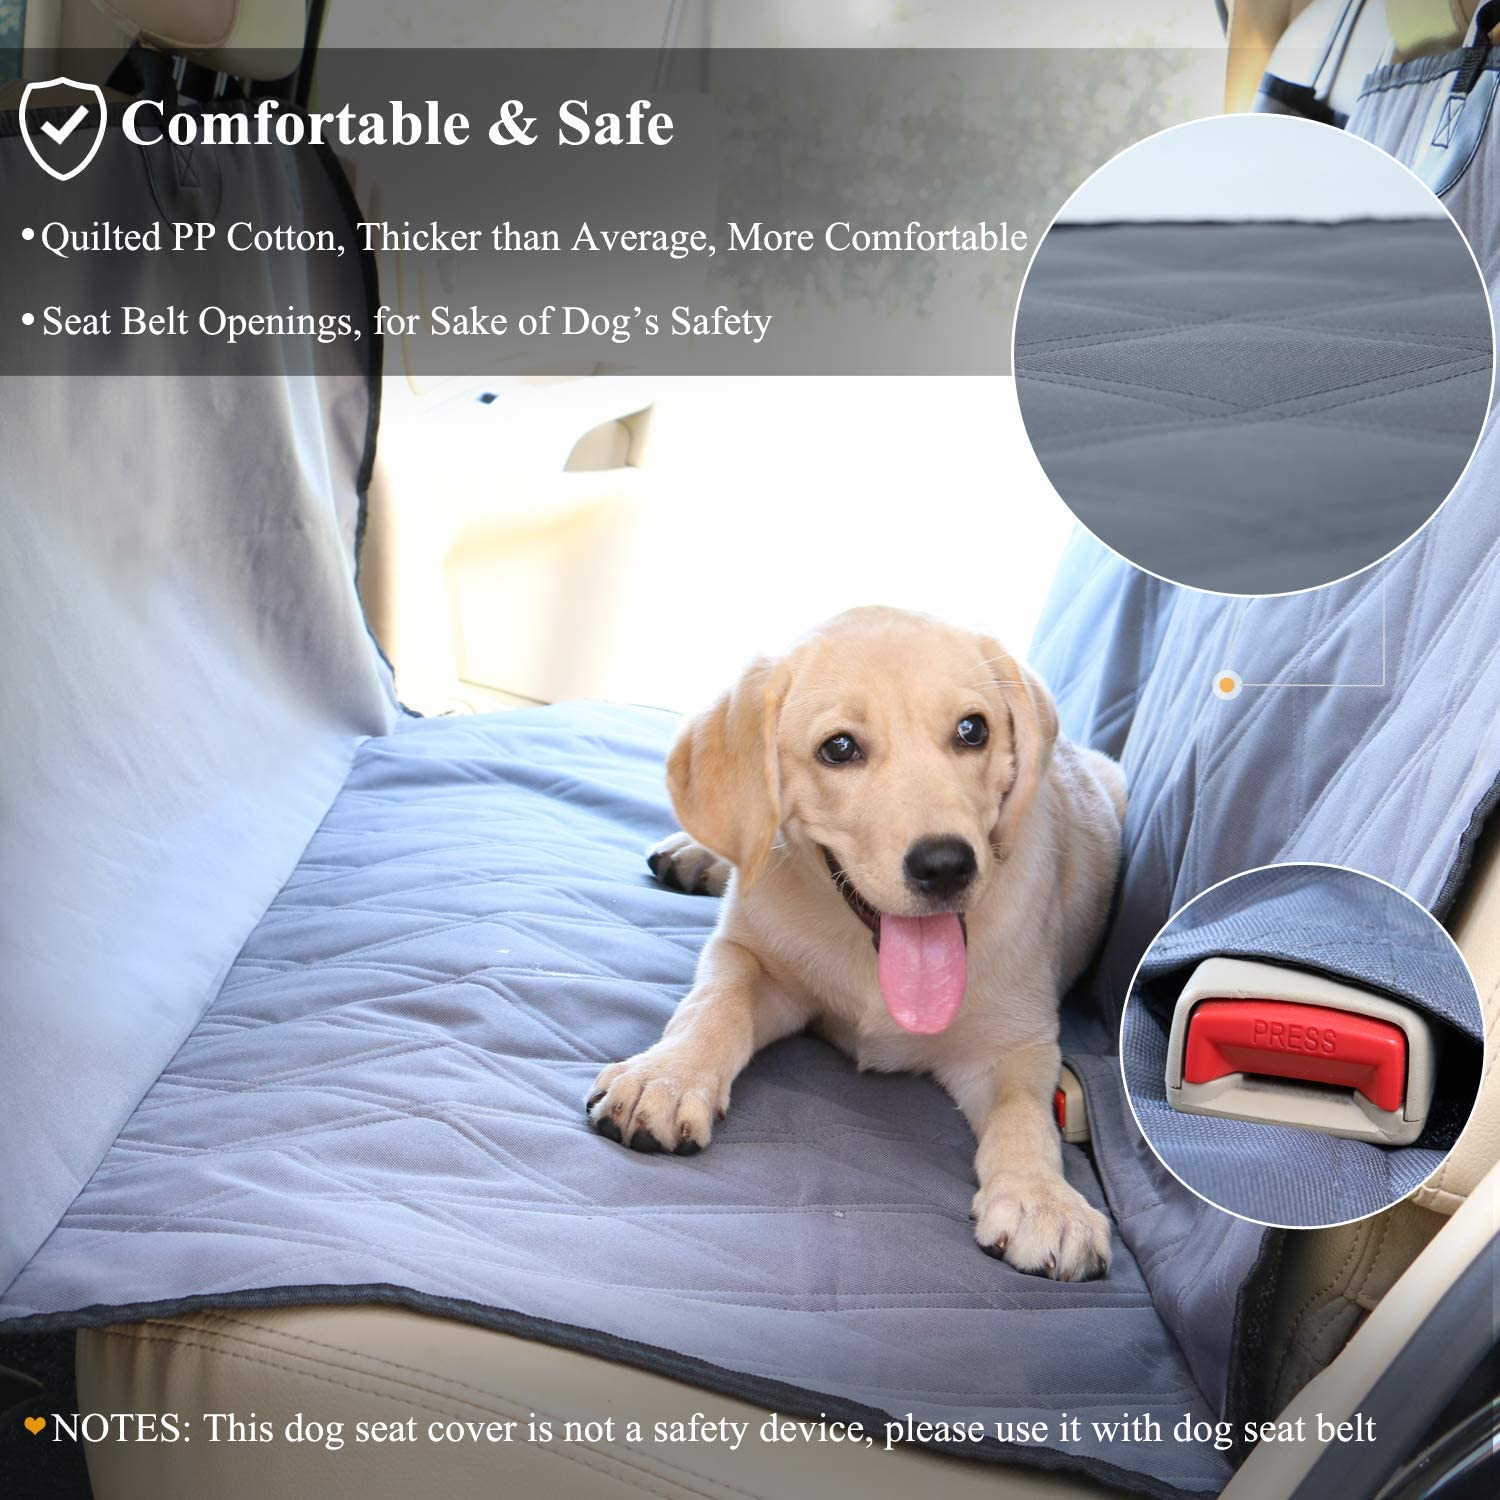 L Heather Khaki SUVs /& MPVs No-Skirt Design VIVAGLORY Dog Front Seat Covers Quilted /& Durable 600 Denier Oxford 4 Layers Dog Seat Cover with Anti-Slip Backing for Most Cars